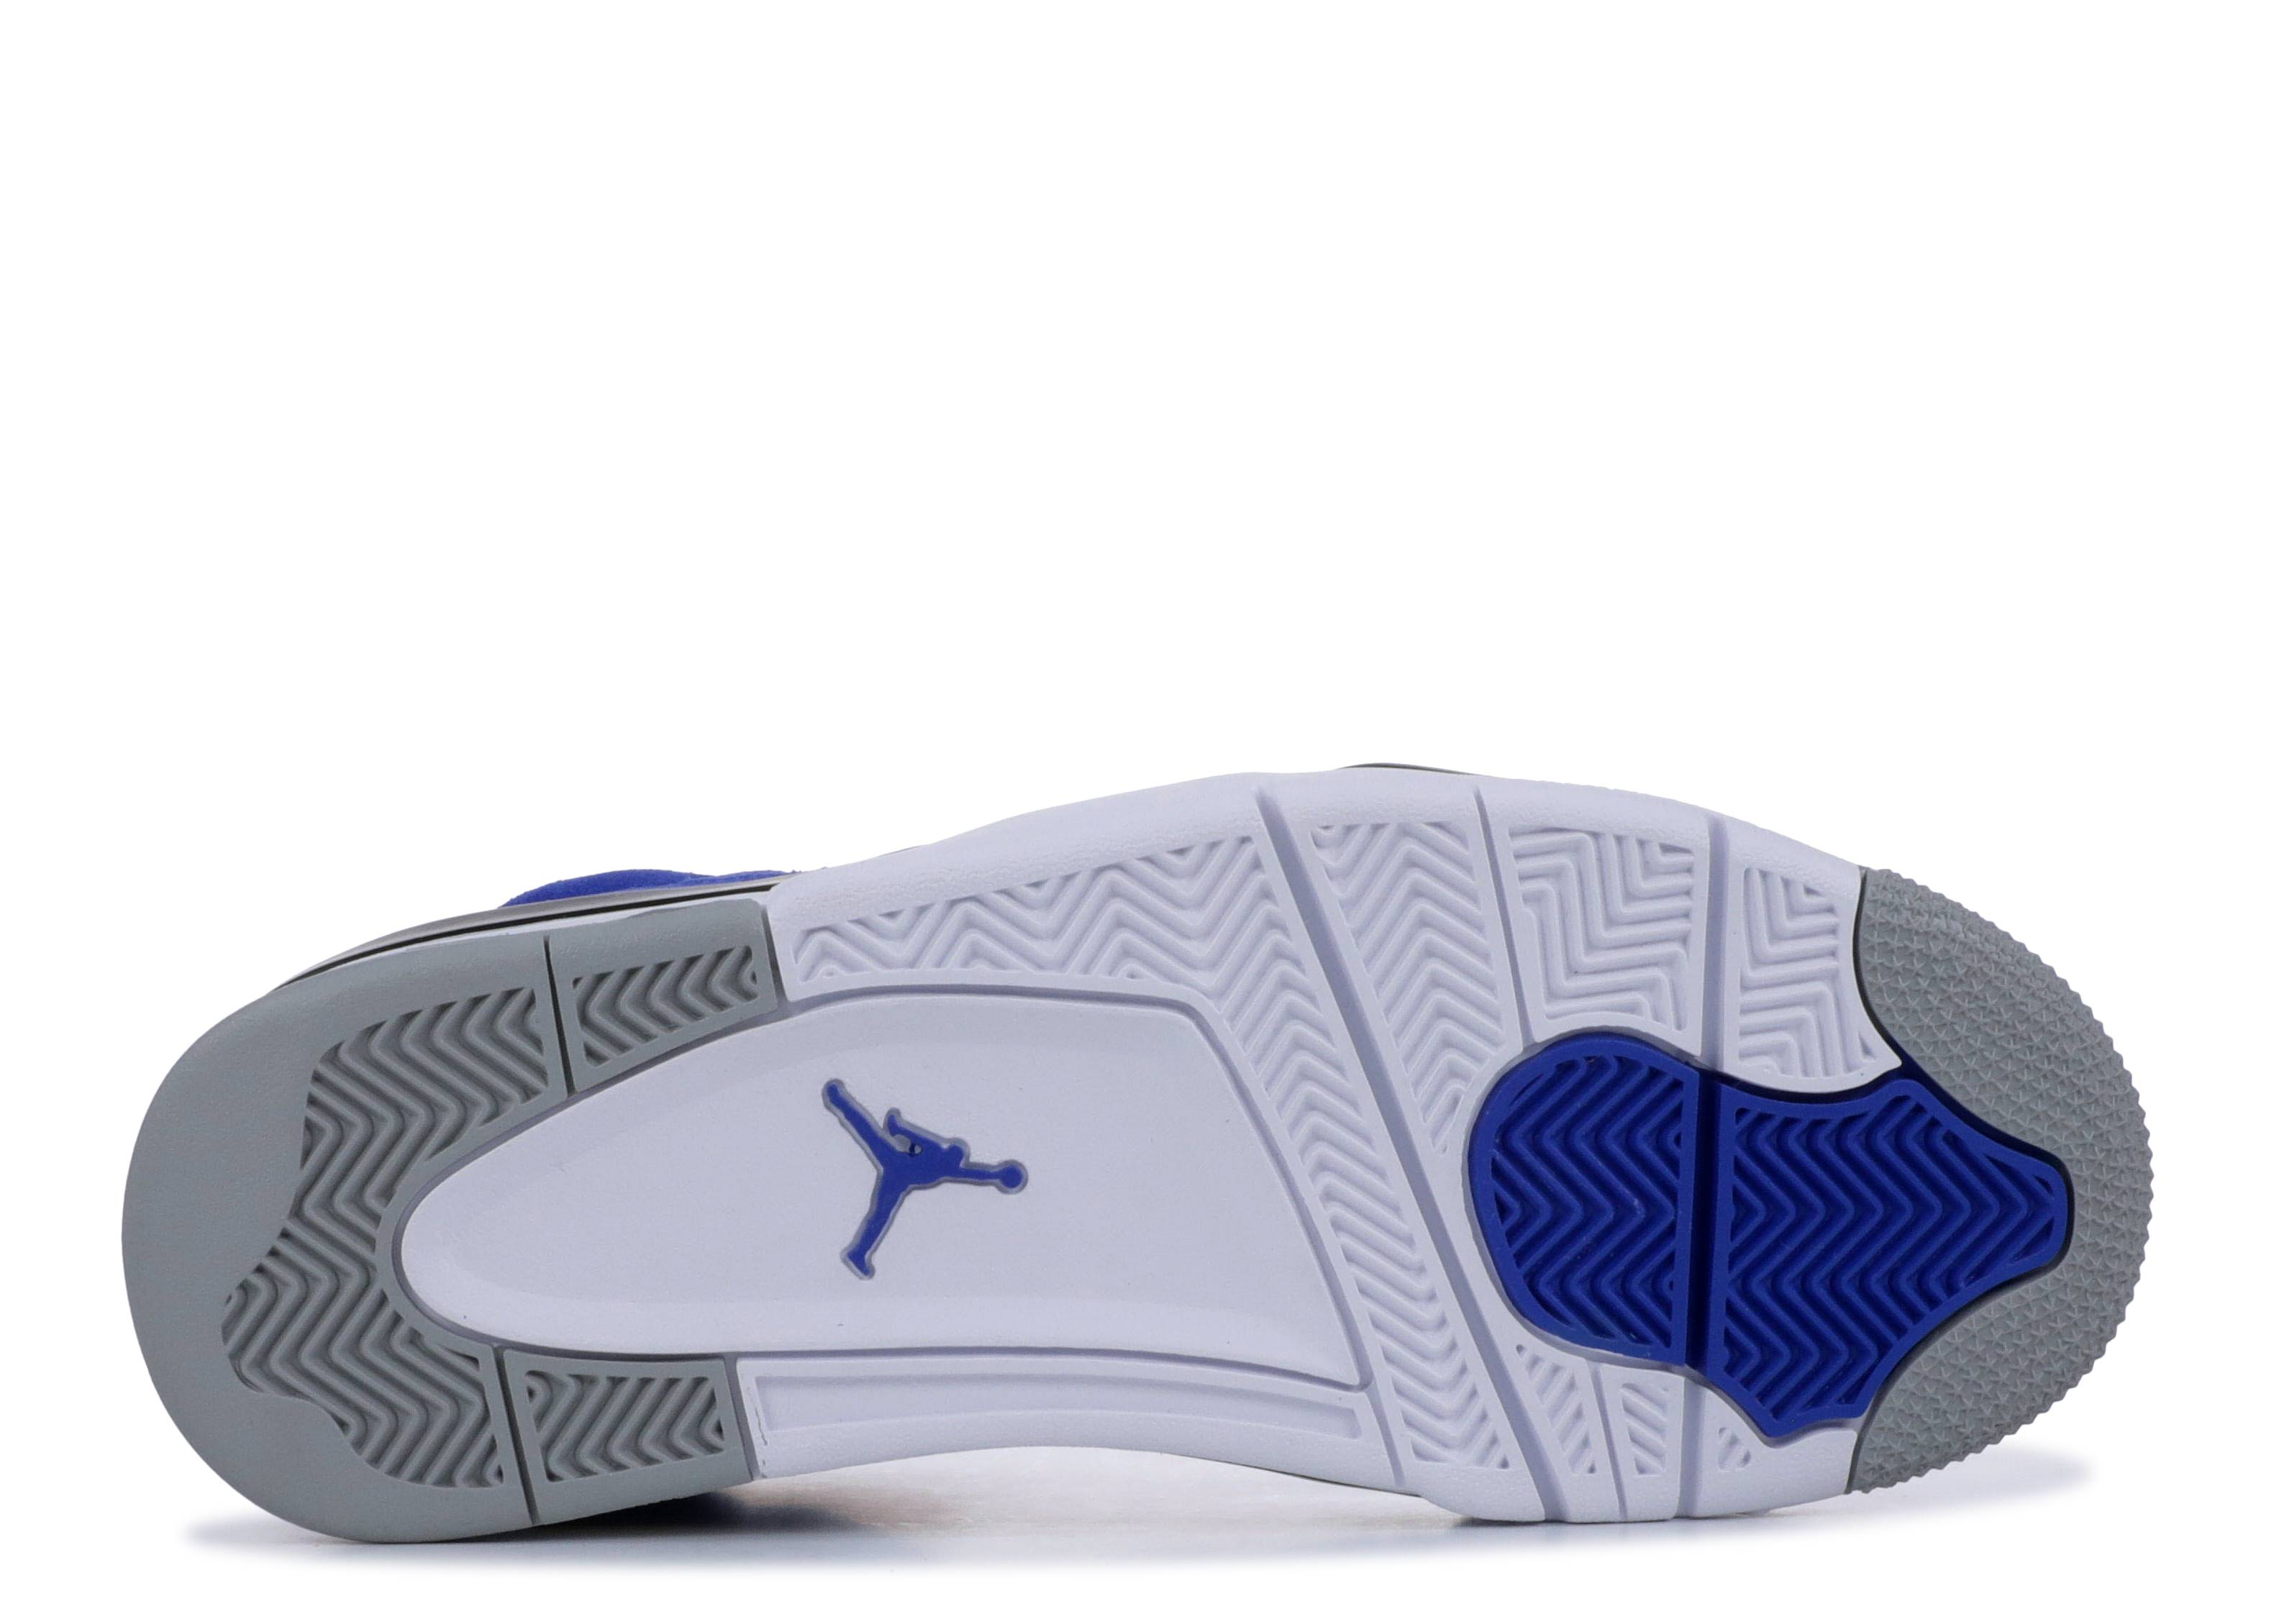 best service f6acd 97a67 Jordan Son Of Low - Air Jordan - 580603 401 - hyper royal/white -black |  Flight Club